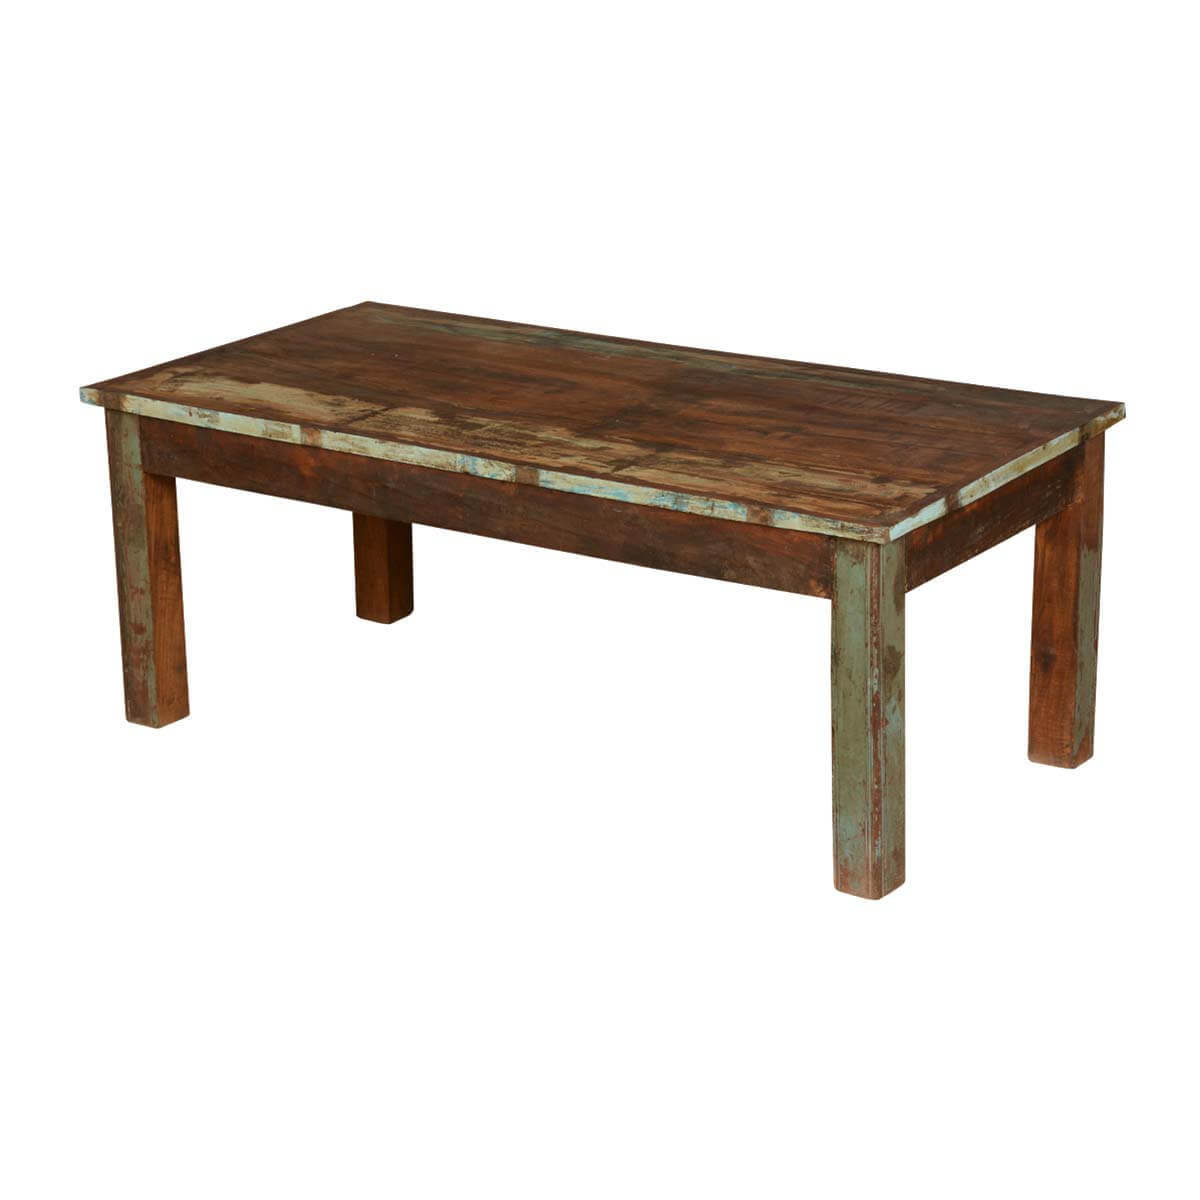 Http Www Sierralivingconcepts Com P 5221 Farmhouse Distressed Reclaimed Wood Rustic Coffee Table Aspx